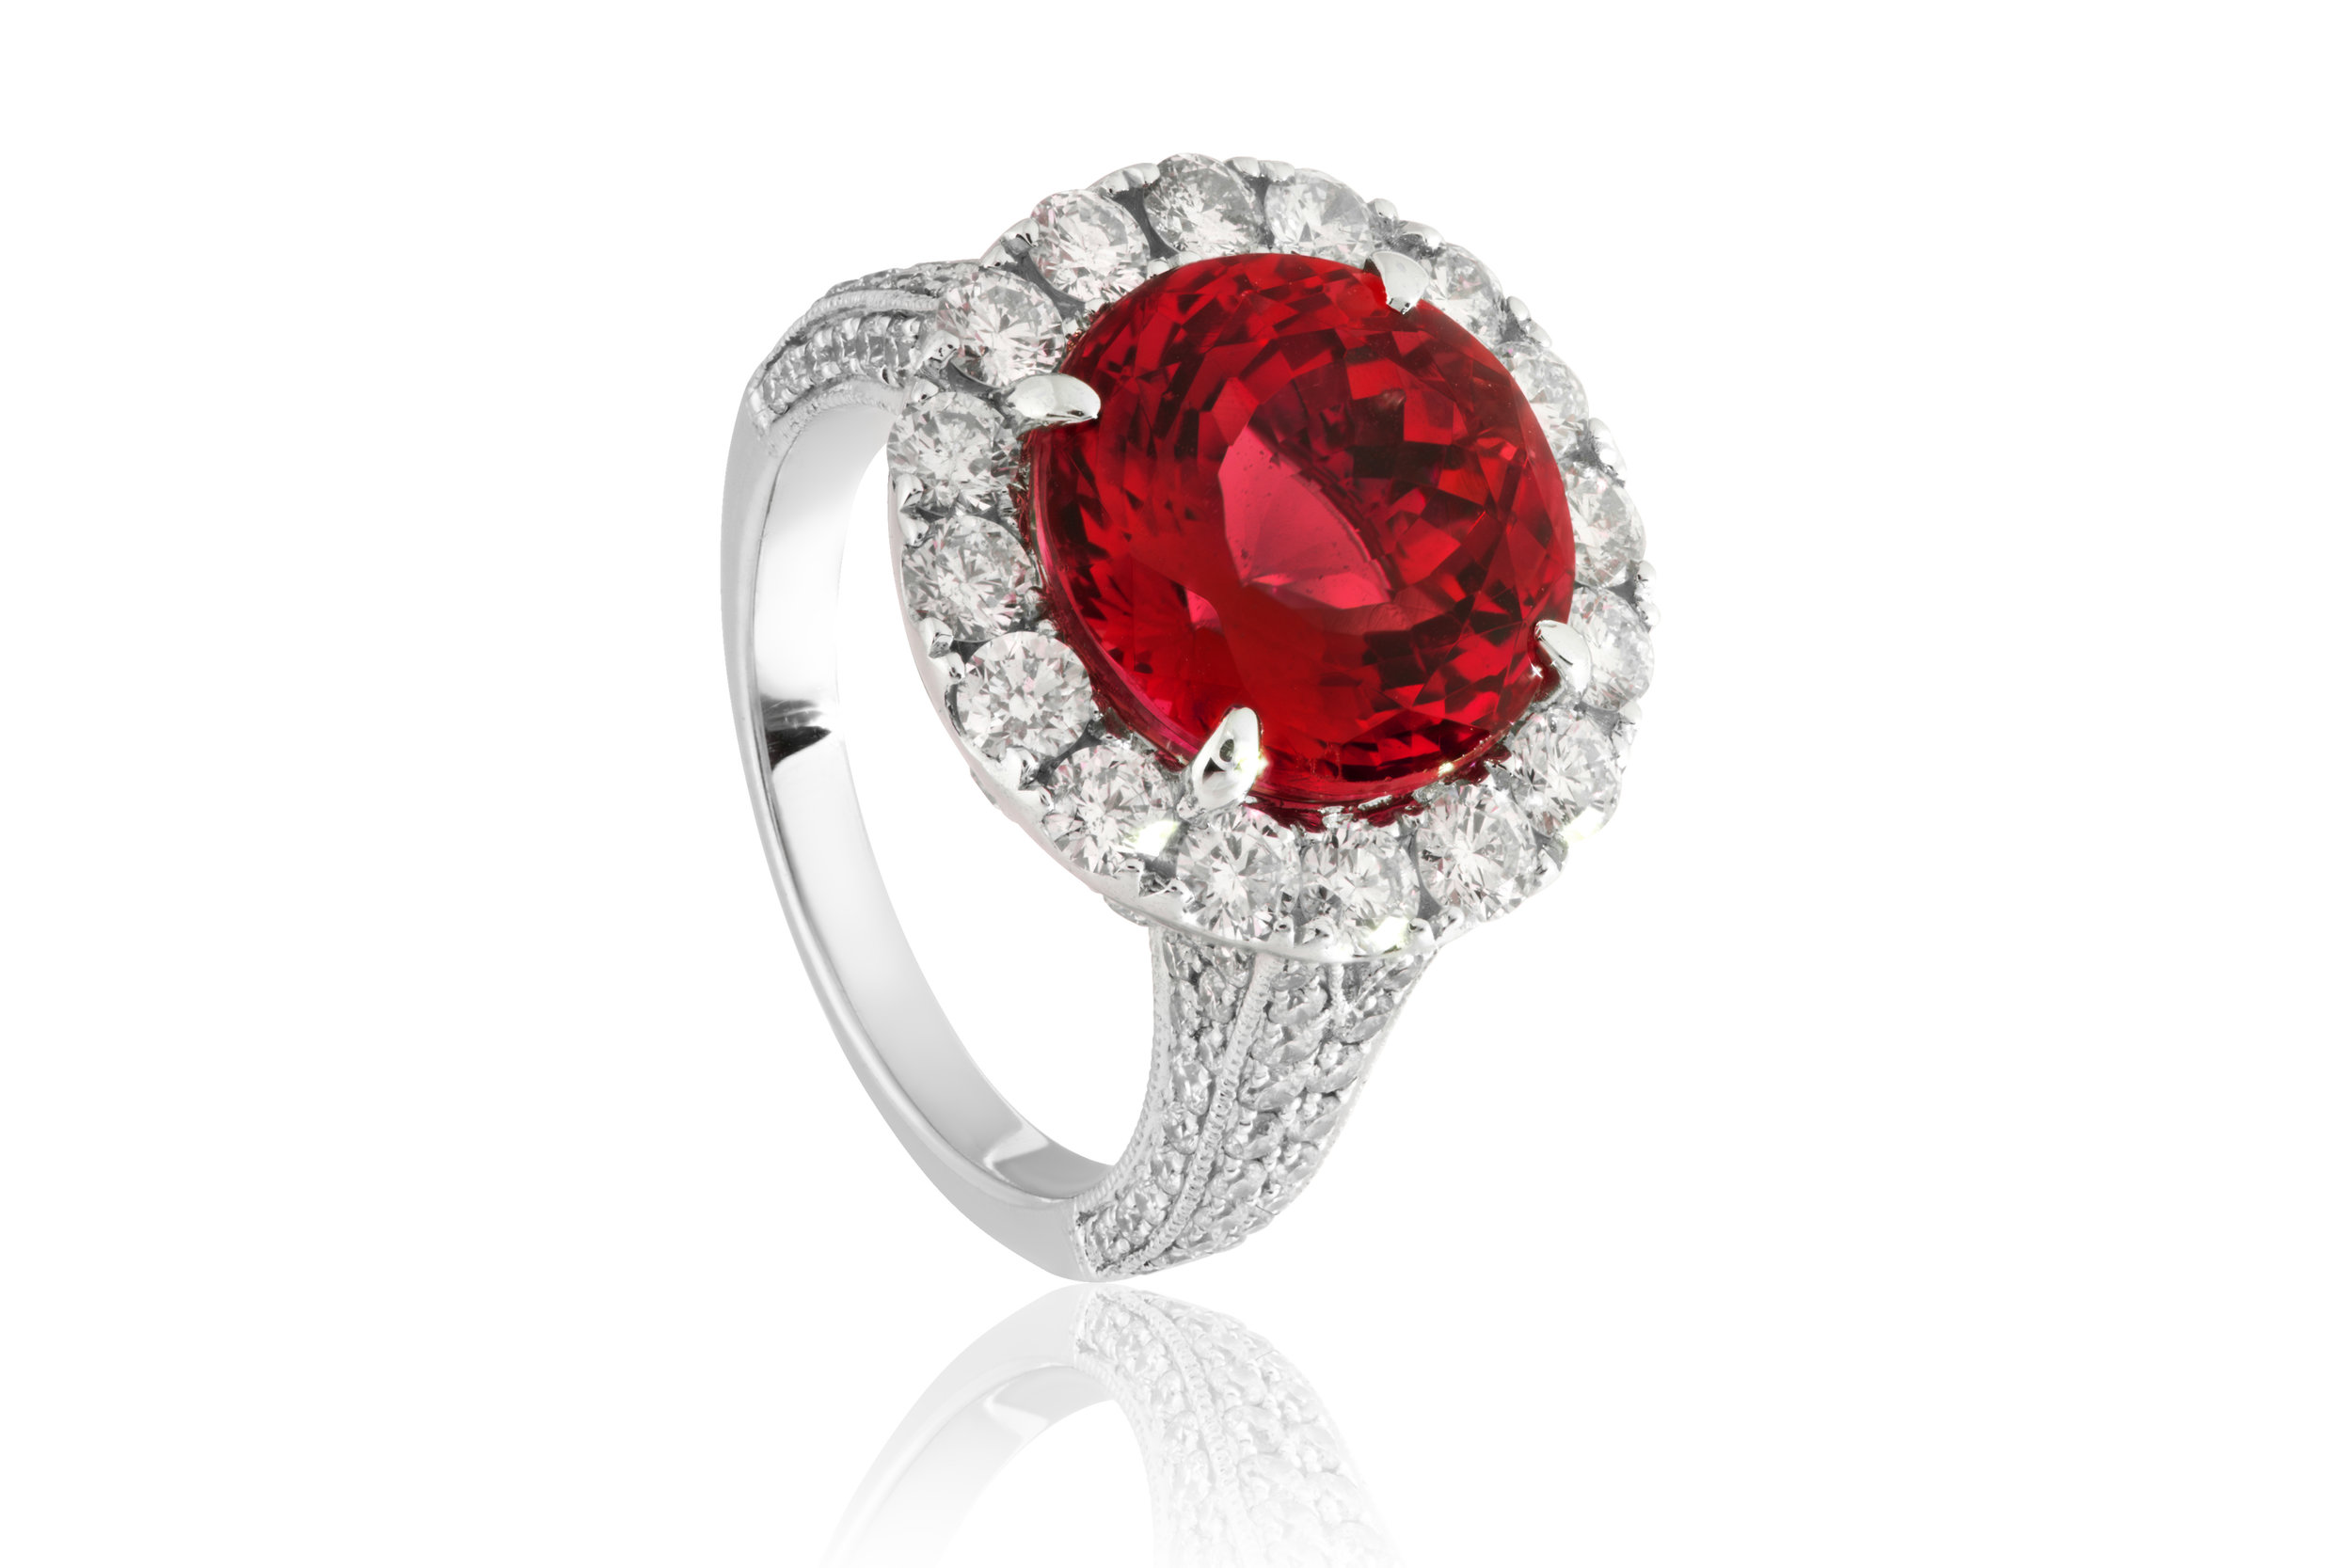 Ruby Ring - Jewelry Appraisal